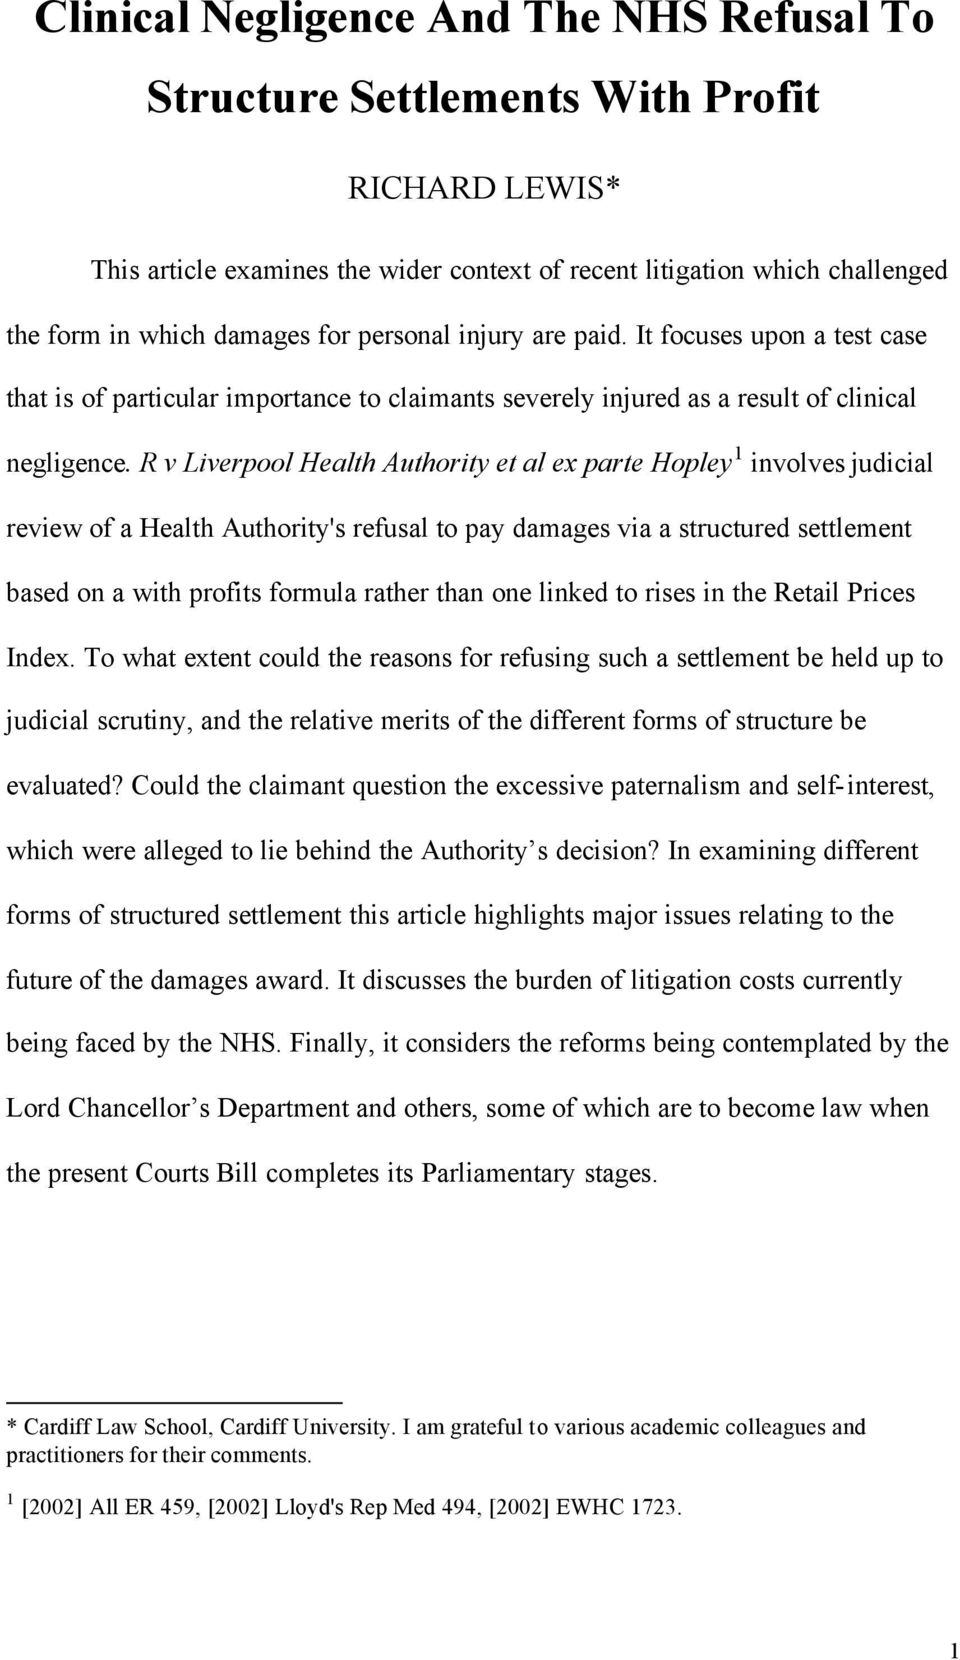 R v Liverpool Health Authority et al ex parte Hopley 1 involves judicial review of a Health Authority's refusal to pay damages via a structured settlement based on a with profits formula rather than